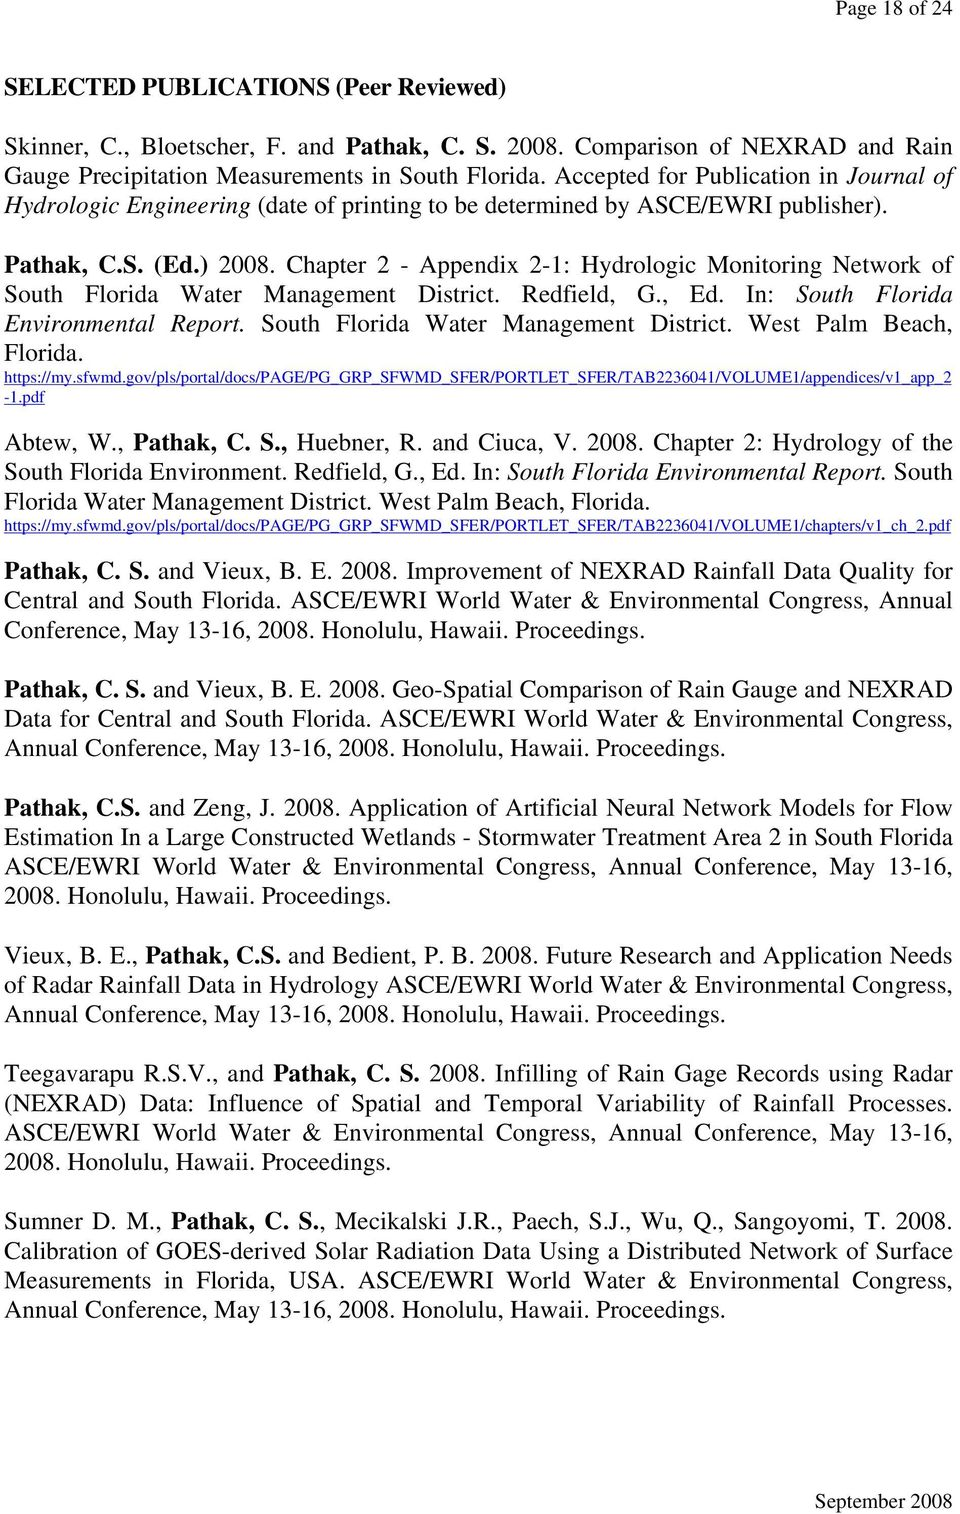 Chapter 2 - Appendix 2-1: Hydrologic Monitoring Network of South Florida Water Management District. Redfield, G., Ed. In: South Florida Environmental Report. South Florida Water Management District. West Palm Beach, Florida.